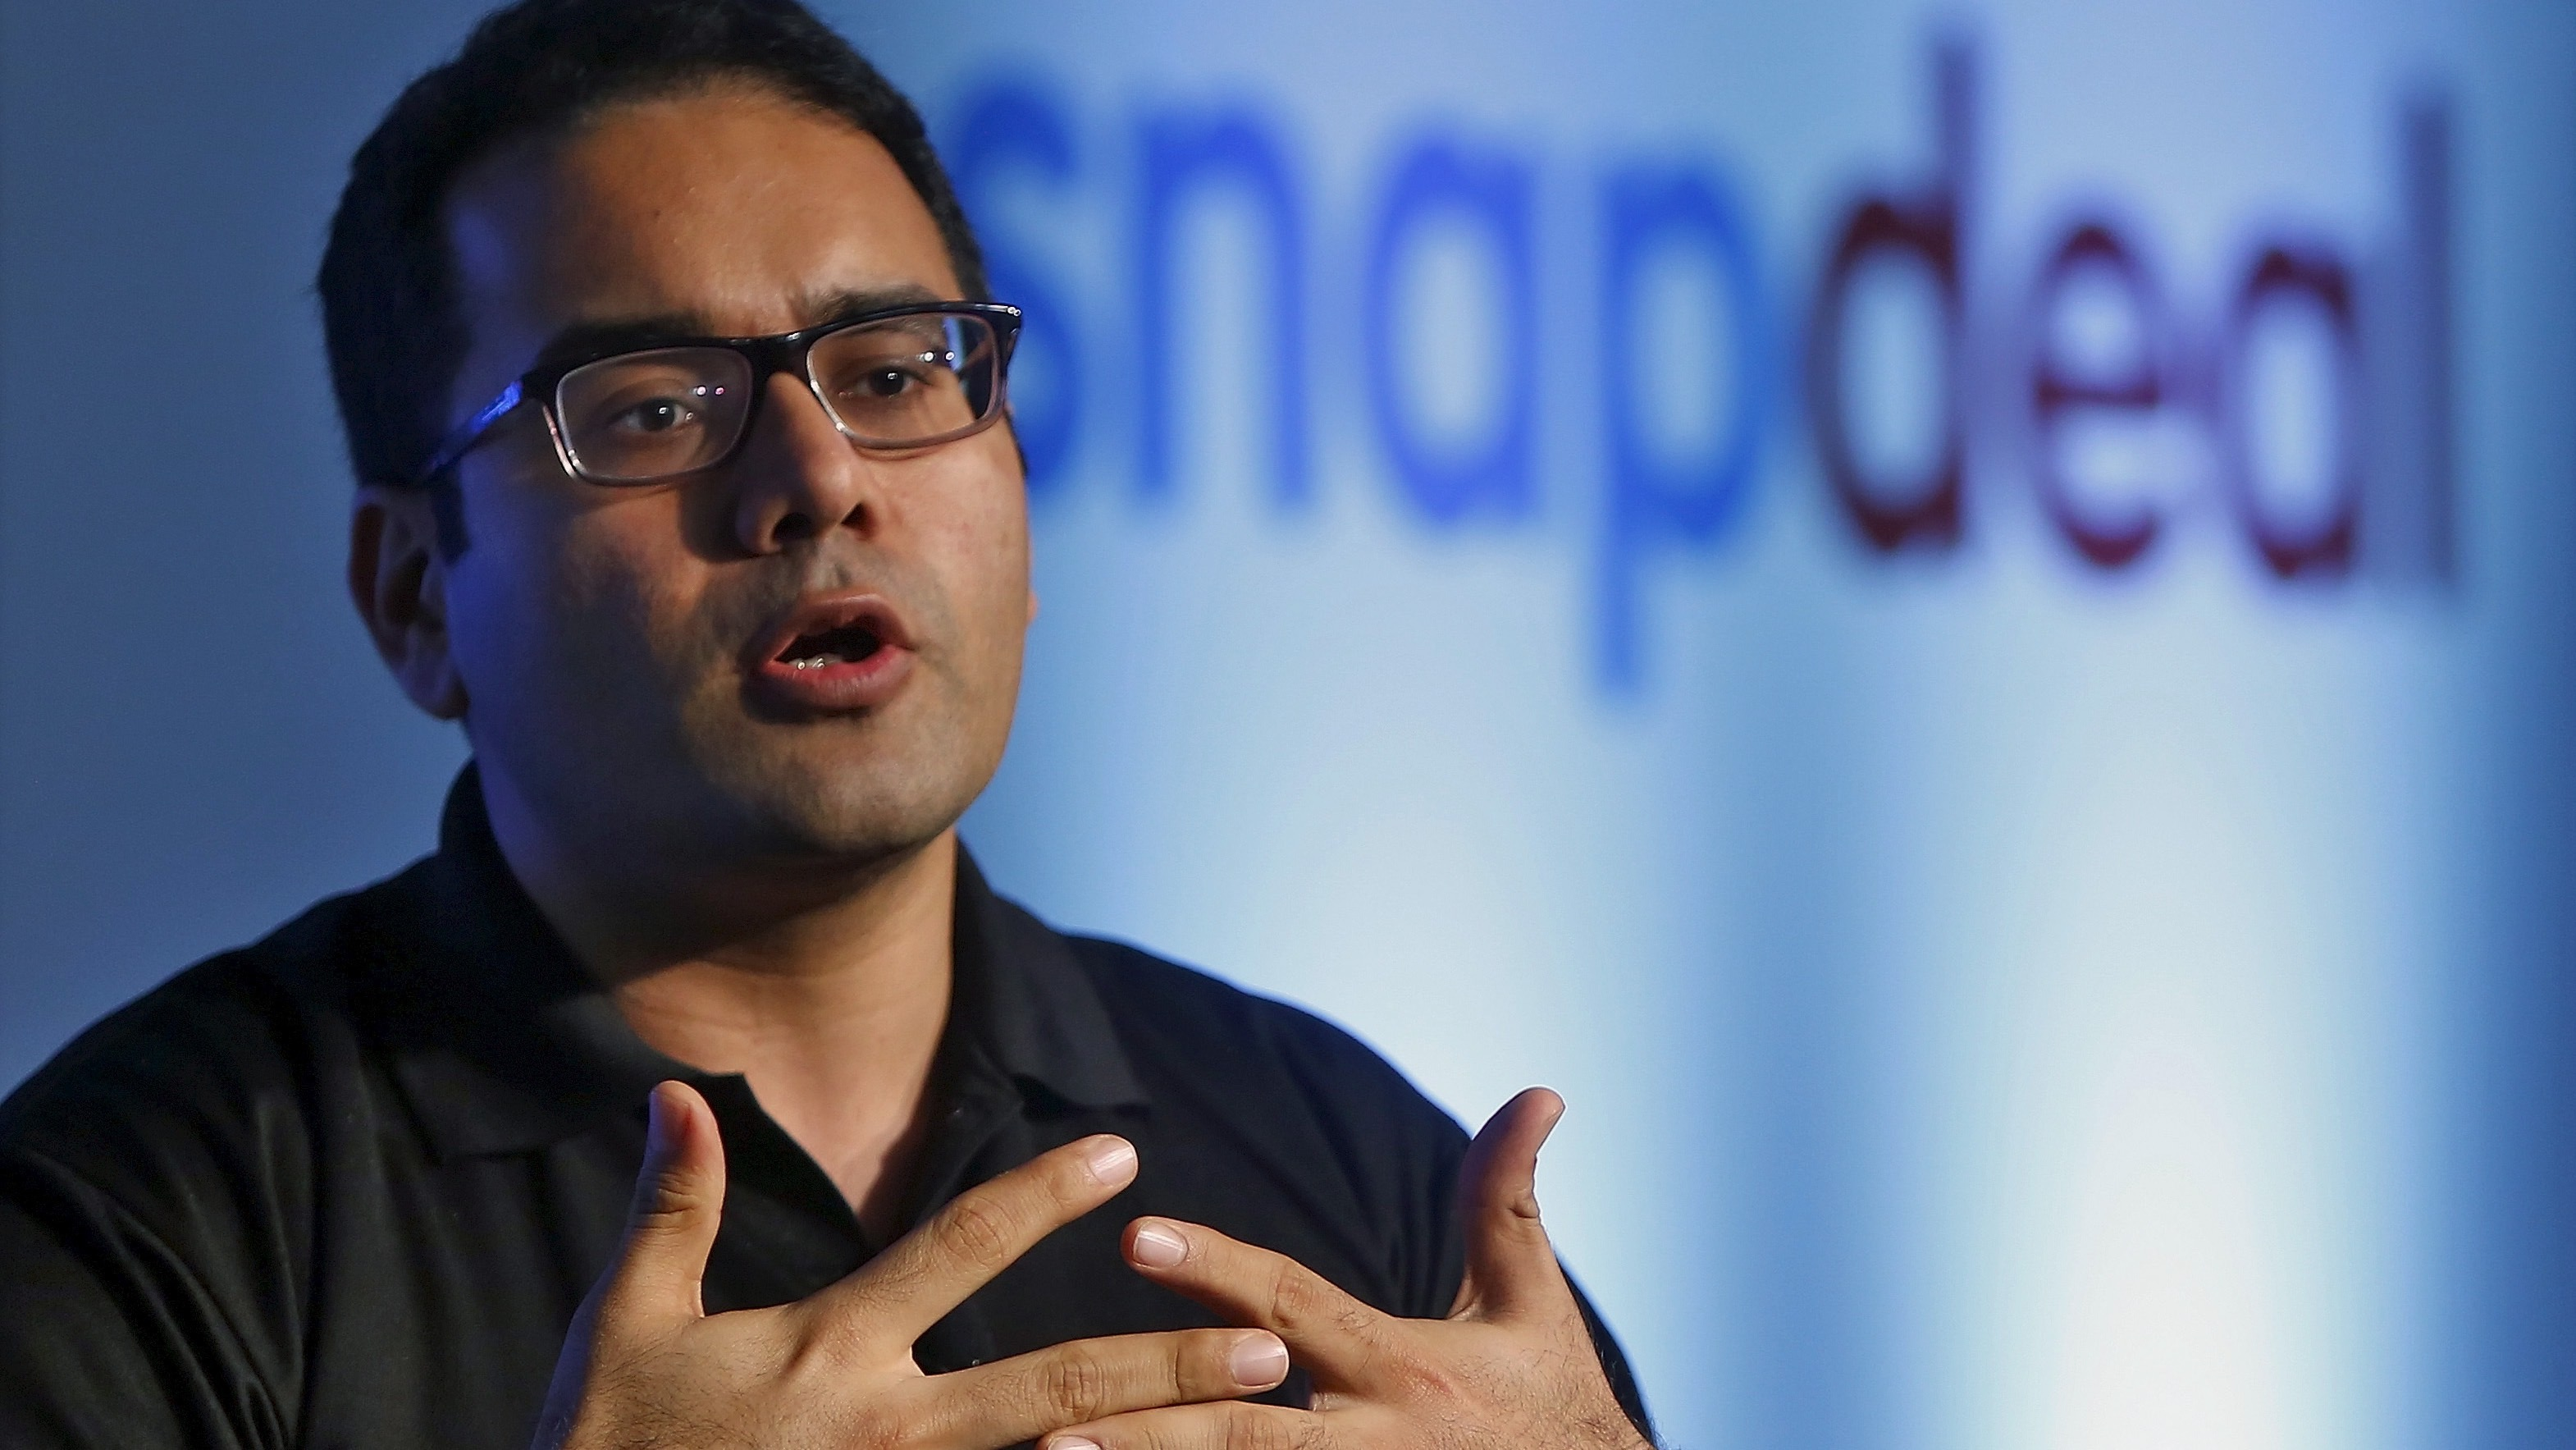 Kunal Bahl, co-founder of Indian online marketplace Snapdeal, gestures as he addresses the media during news conference in New Delhi, India, July 15, 2015. REUTERS/Anindito Mukherjee - RTX1KDB4